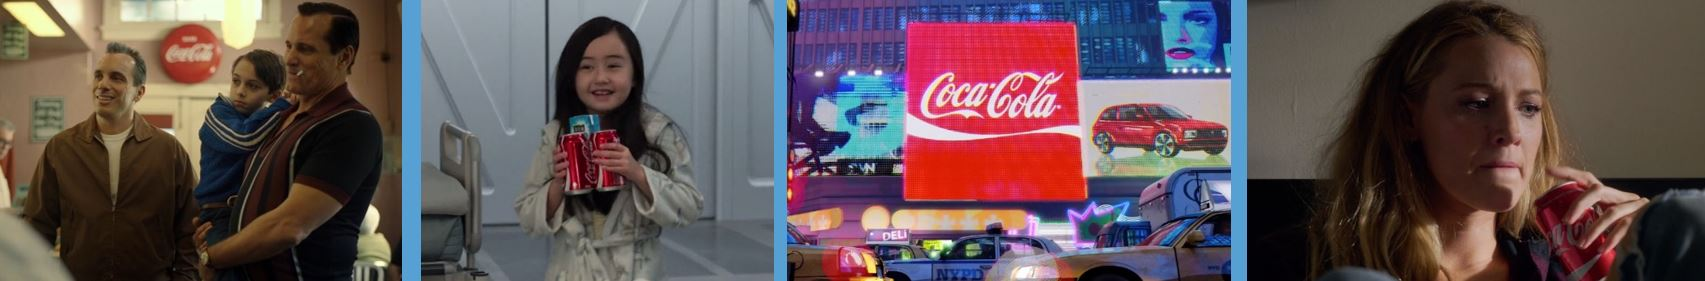 product placement concave brand tracking branded entertainment brand integration marketing valuation Coca-Cola green book spider-man into the spider-verse a simple favor Coke